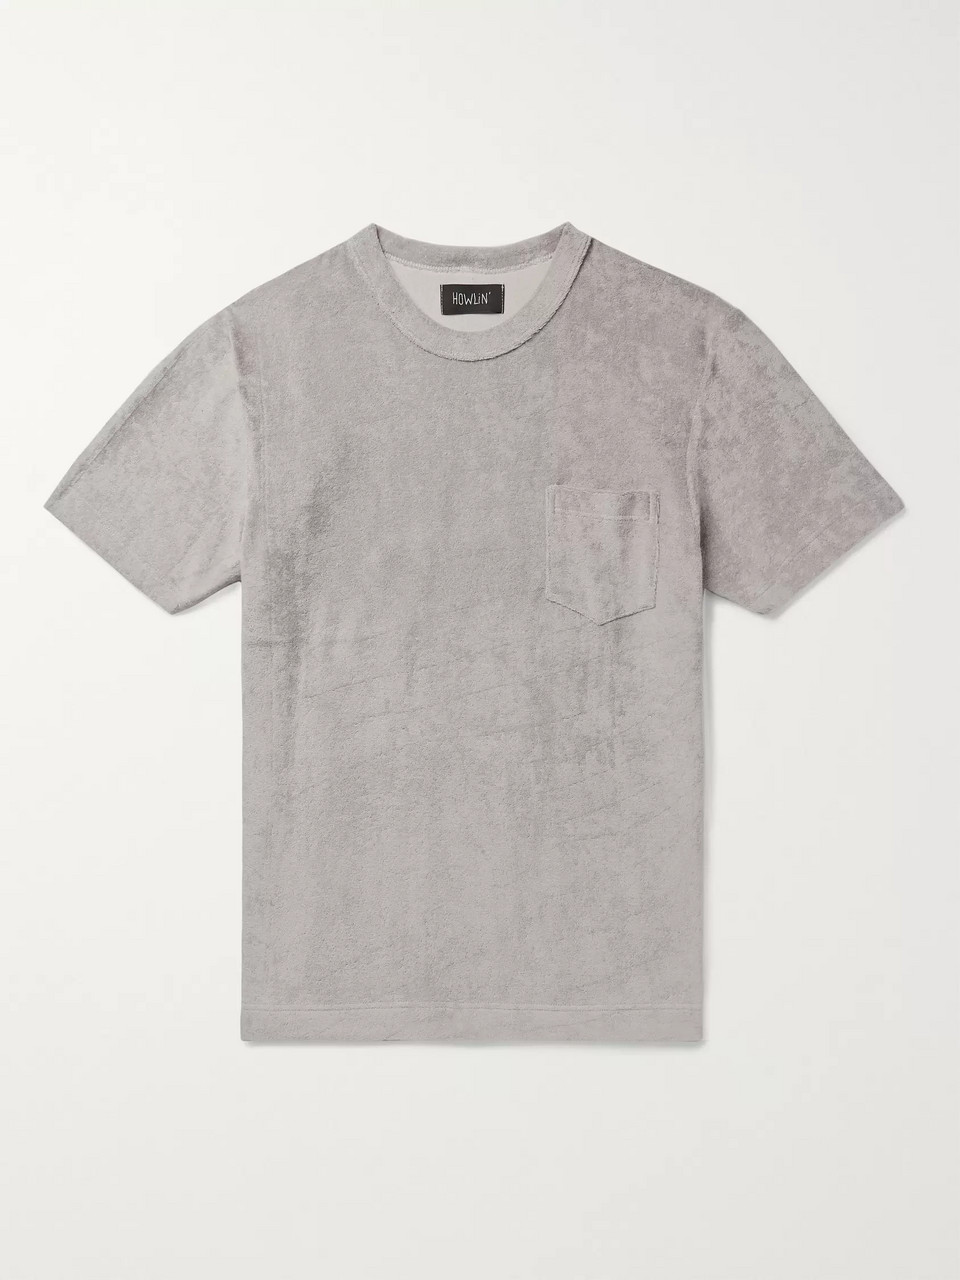 Howlin' Cotton-Blend Terry T-Shirt